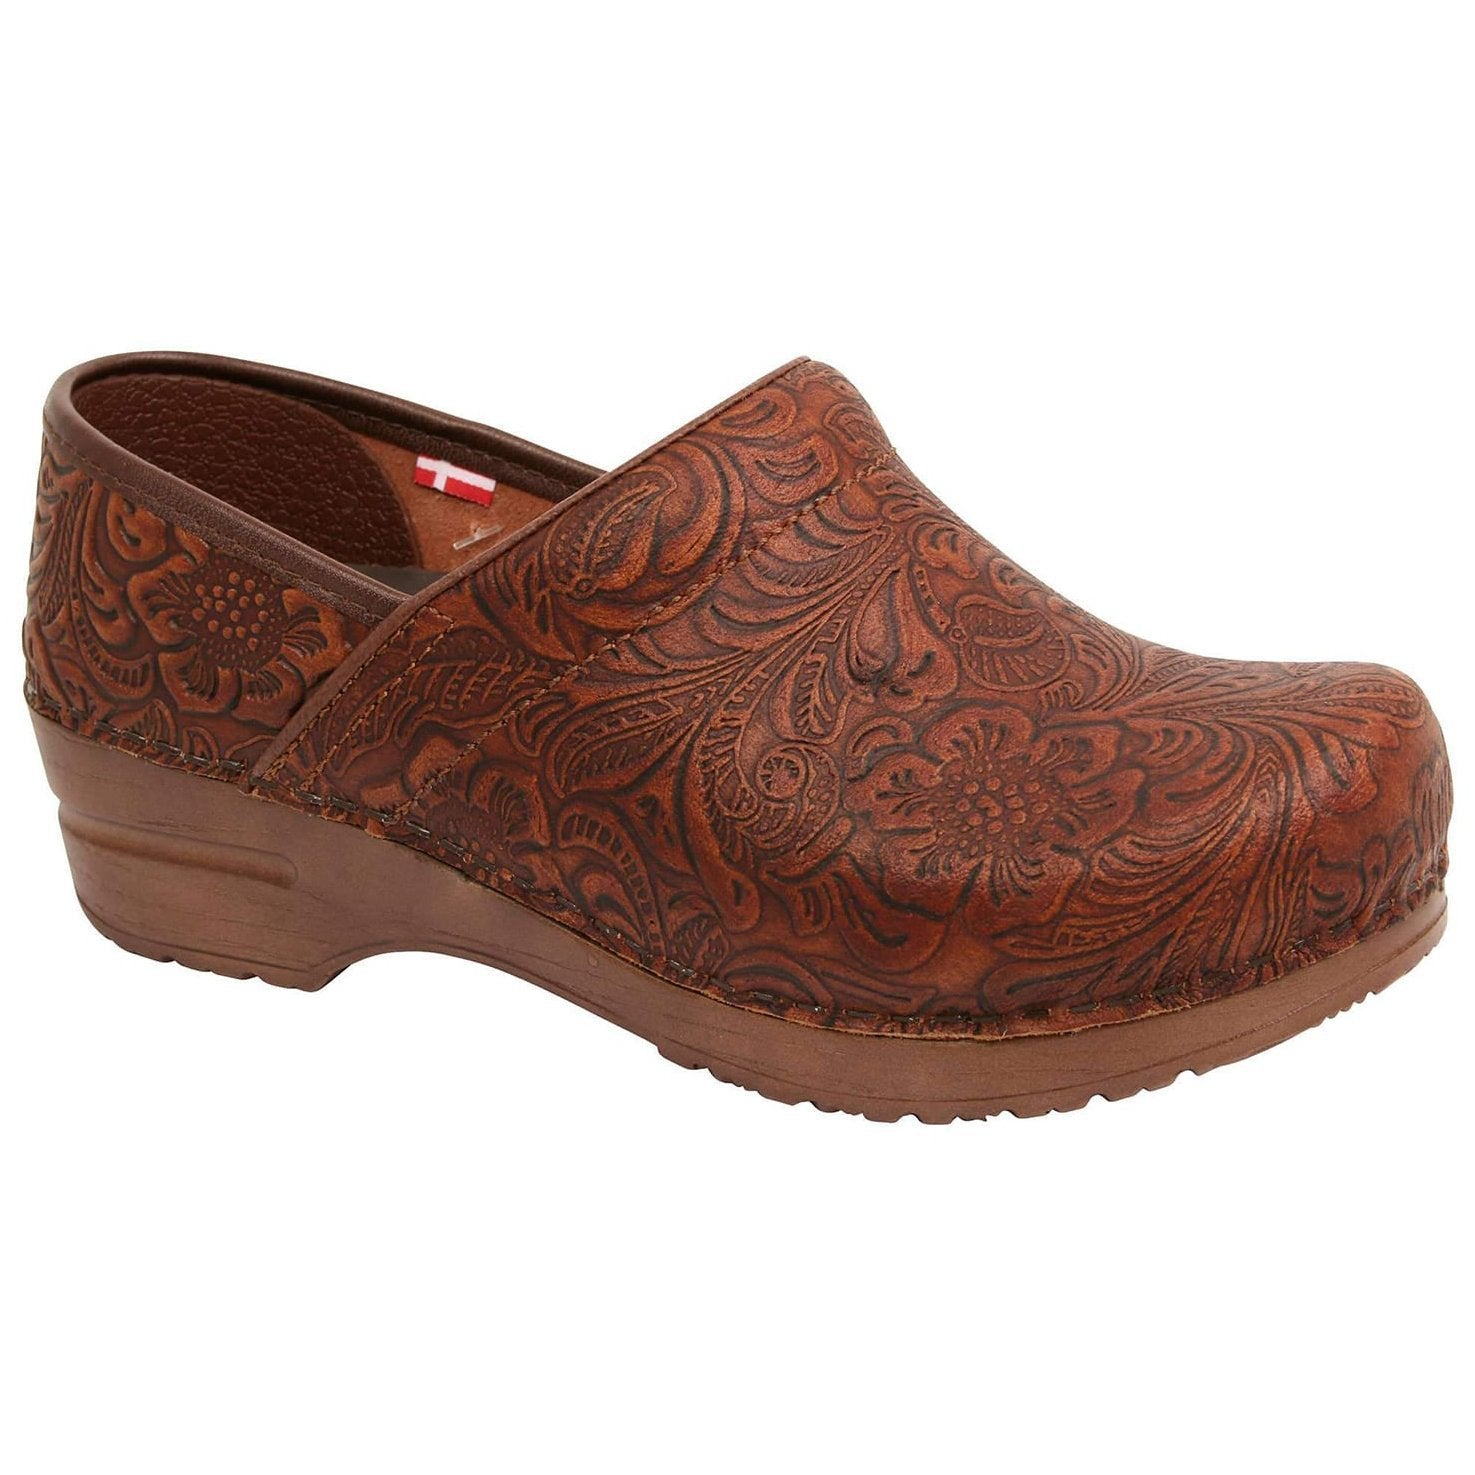 Sanita Gwenore Women's Closed Back Clog